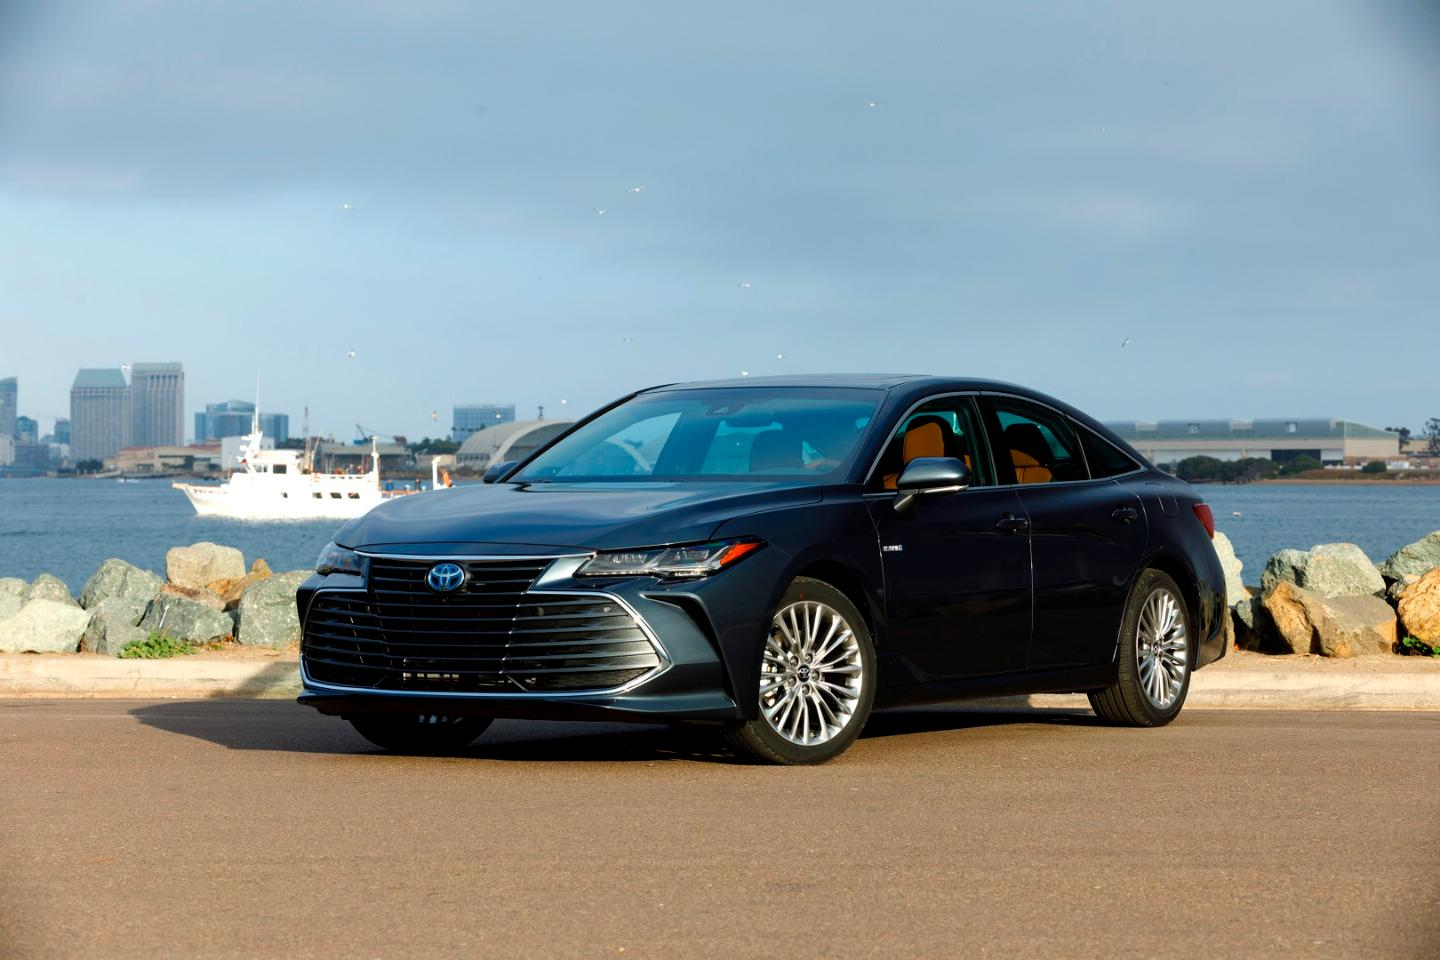 The Toyota nameplate is synonymous with reliability to many of the buying public and the Avalon is one of the most recognizable Toyotas thanks to it being the flagship of the automaker's sedan lineup